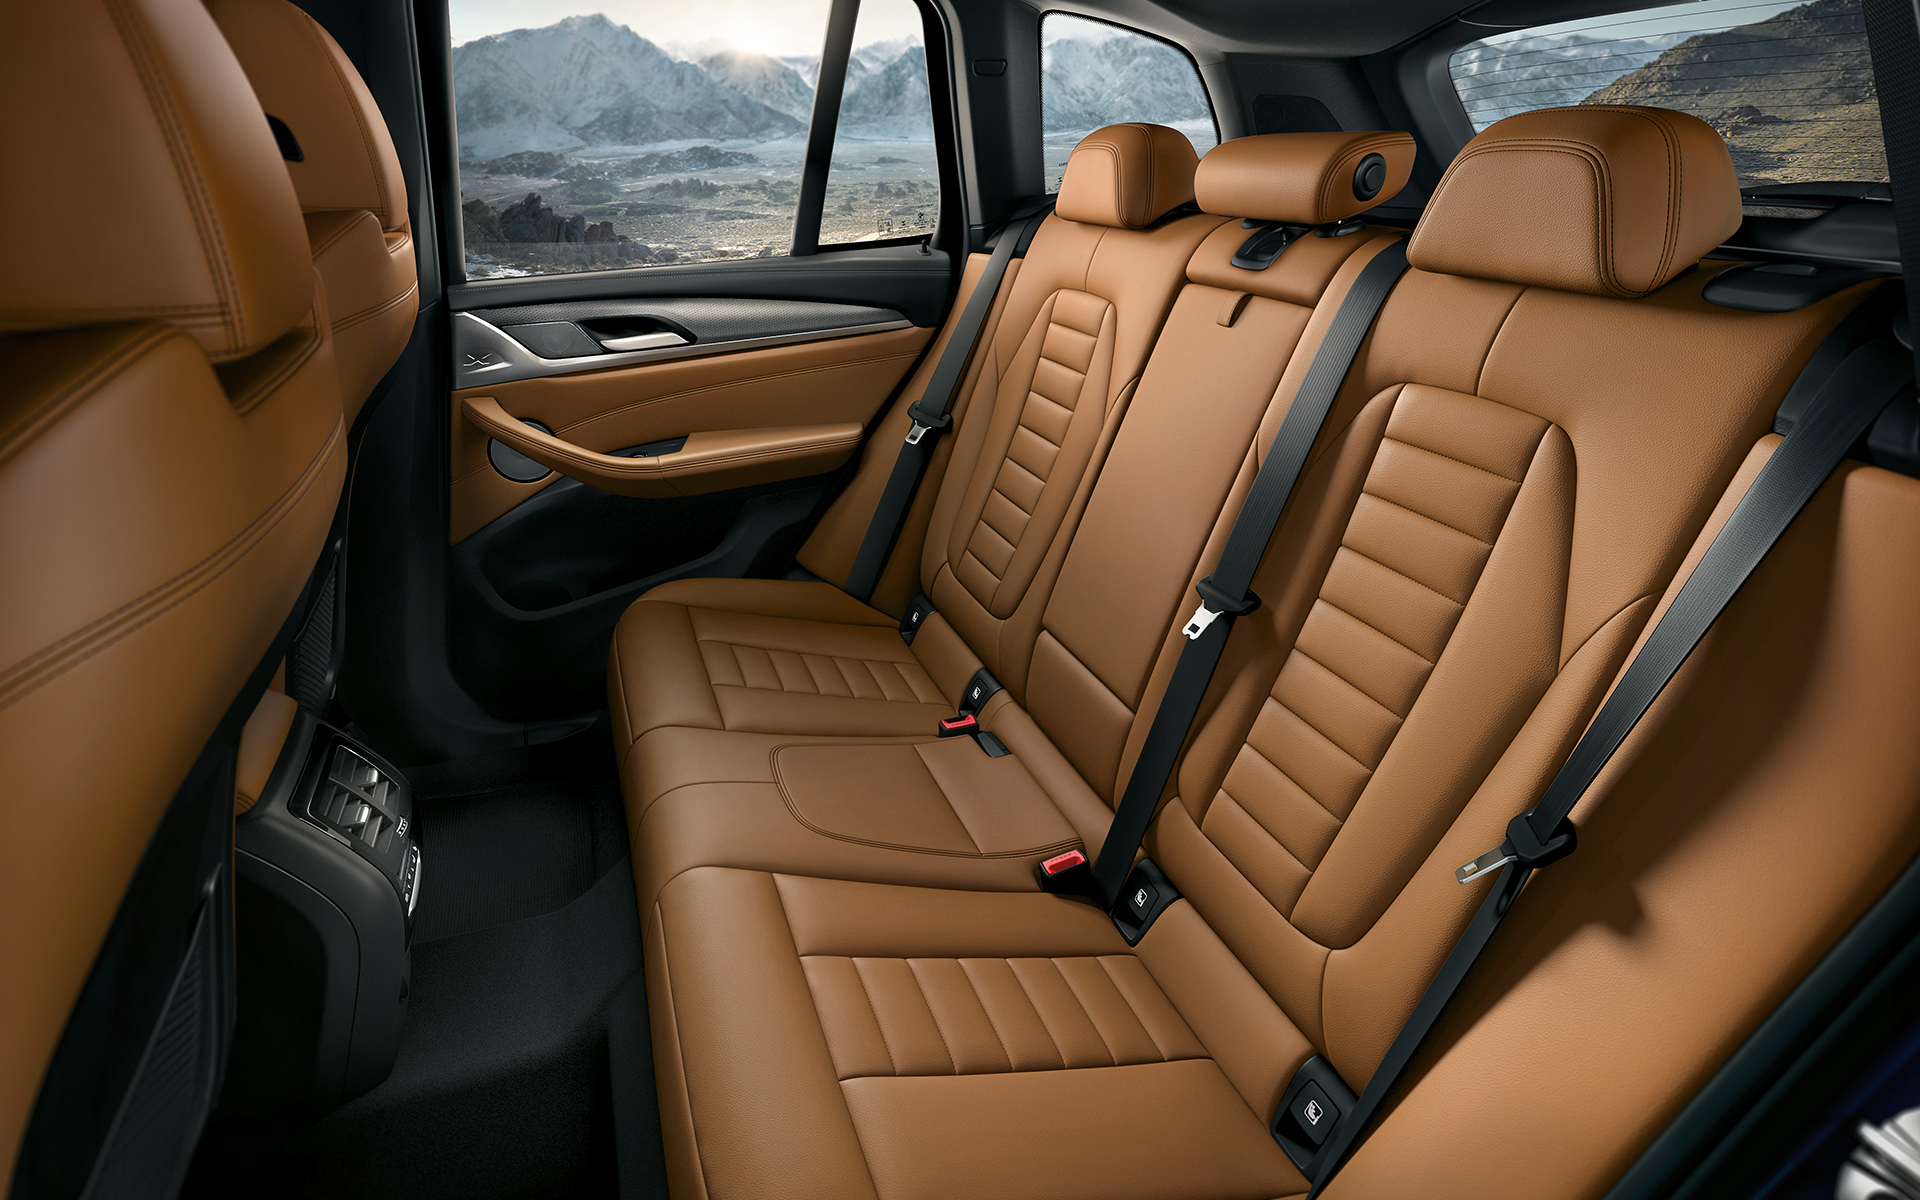 BMW X Series X3: luxurious brown leather interior upholstery design.